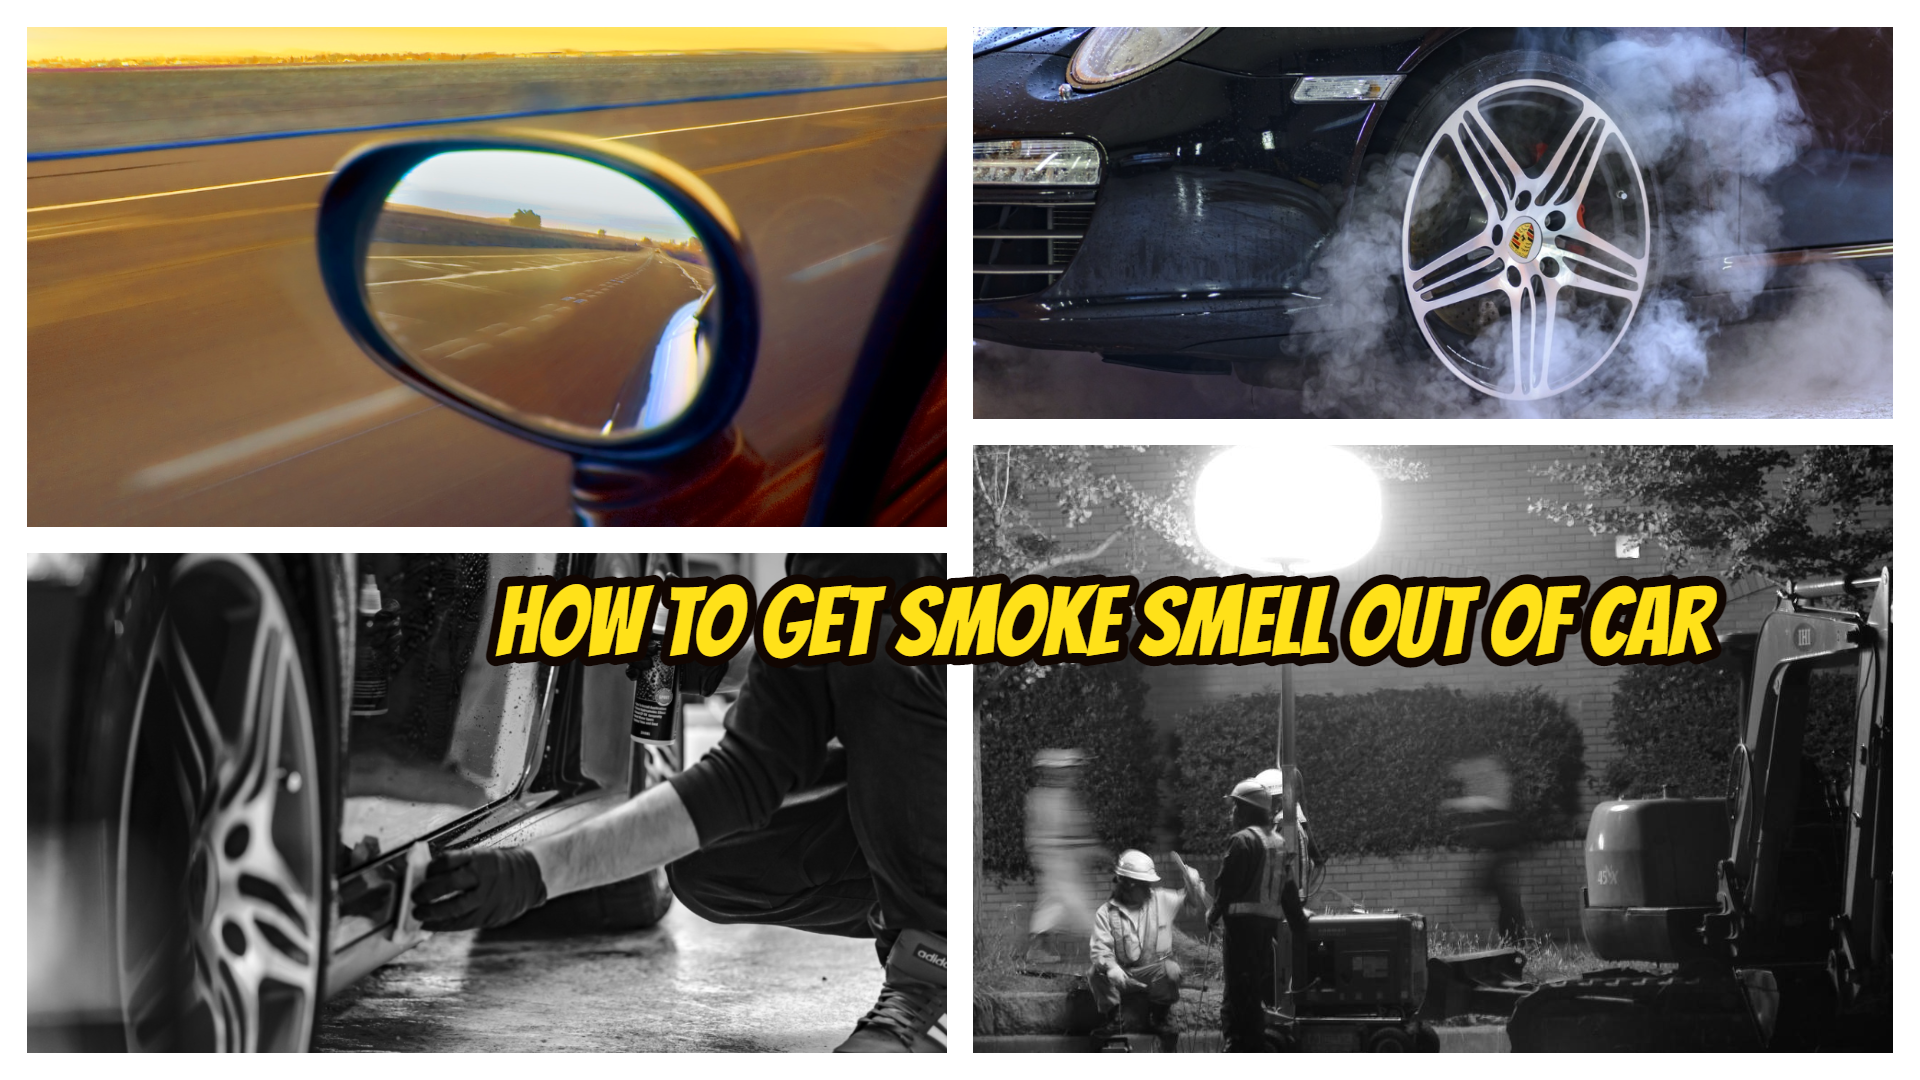 How to Get Smoke Smell Out of Car